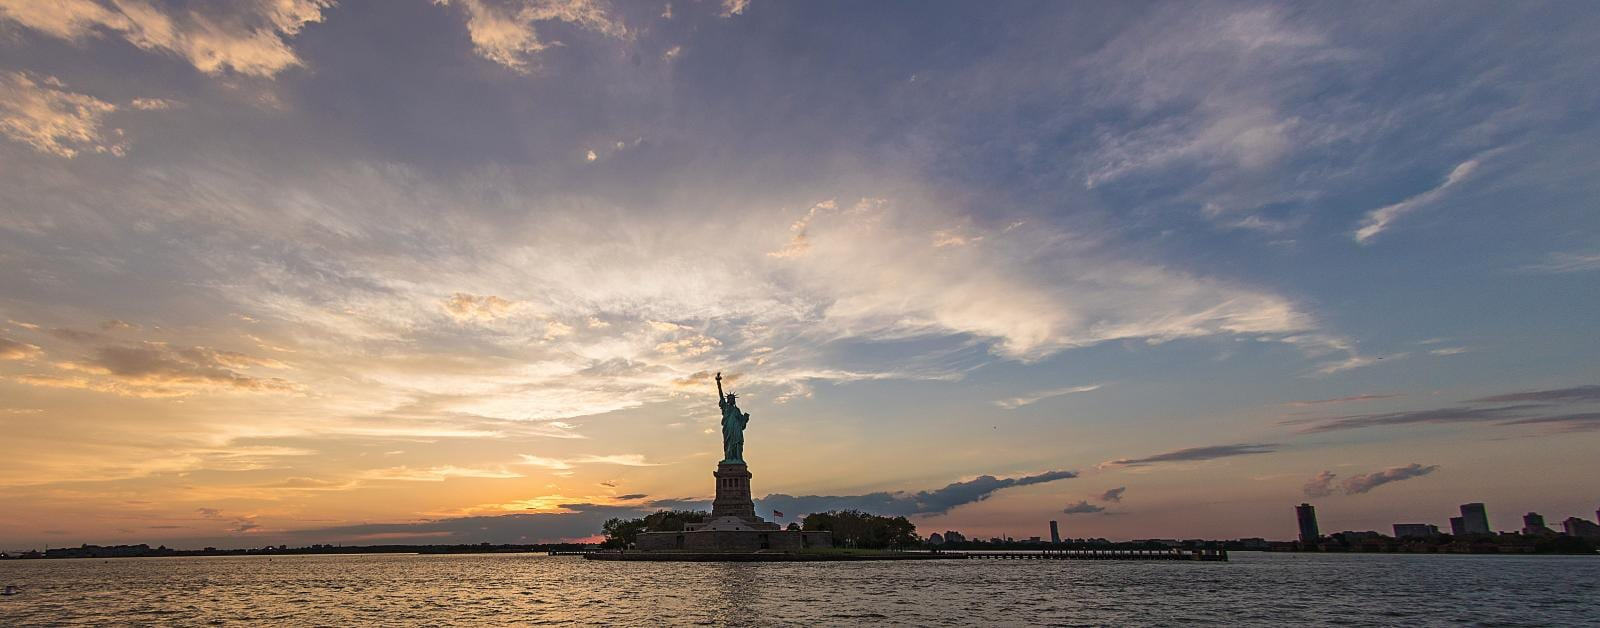 Tour to the Statue of Liberty, Ellis Island & One World Observatory